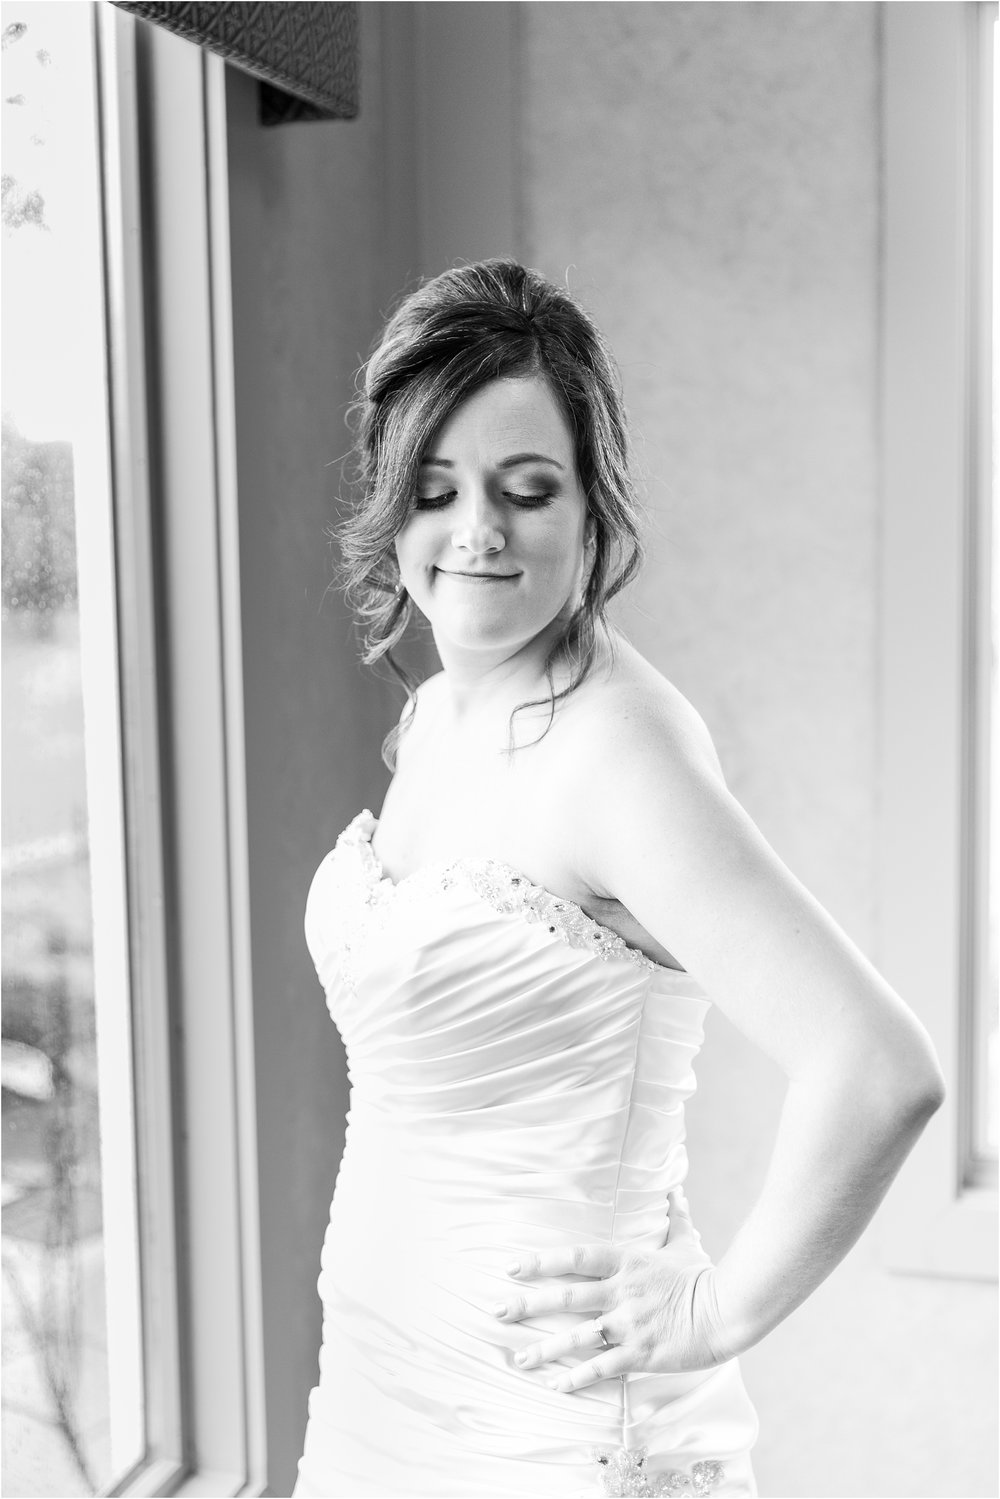 classic-wedding-photos-at-great-oaks-country-club-in-rochester-hills-mi-by-courtney-carolyn-photography_0025.jpg